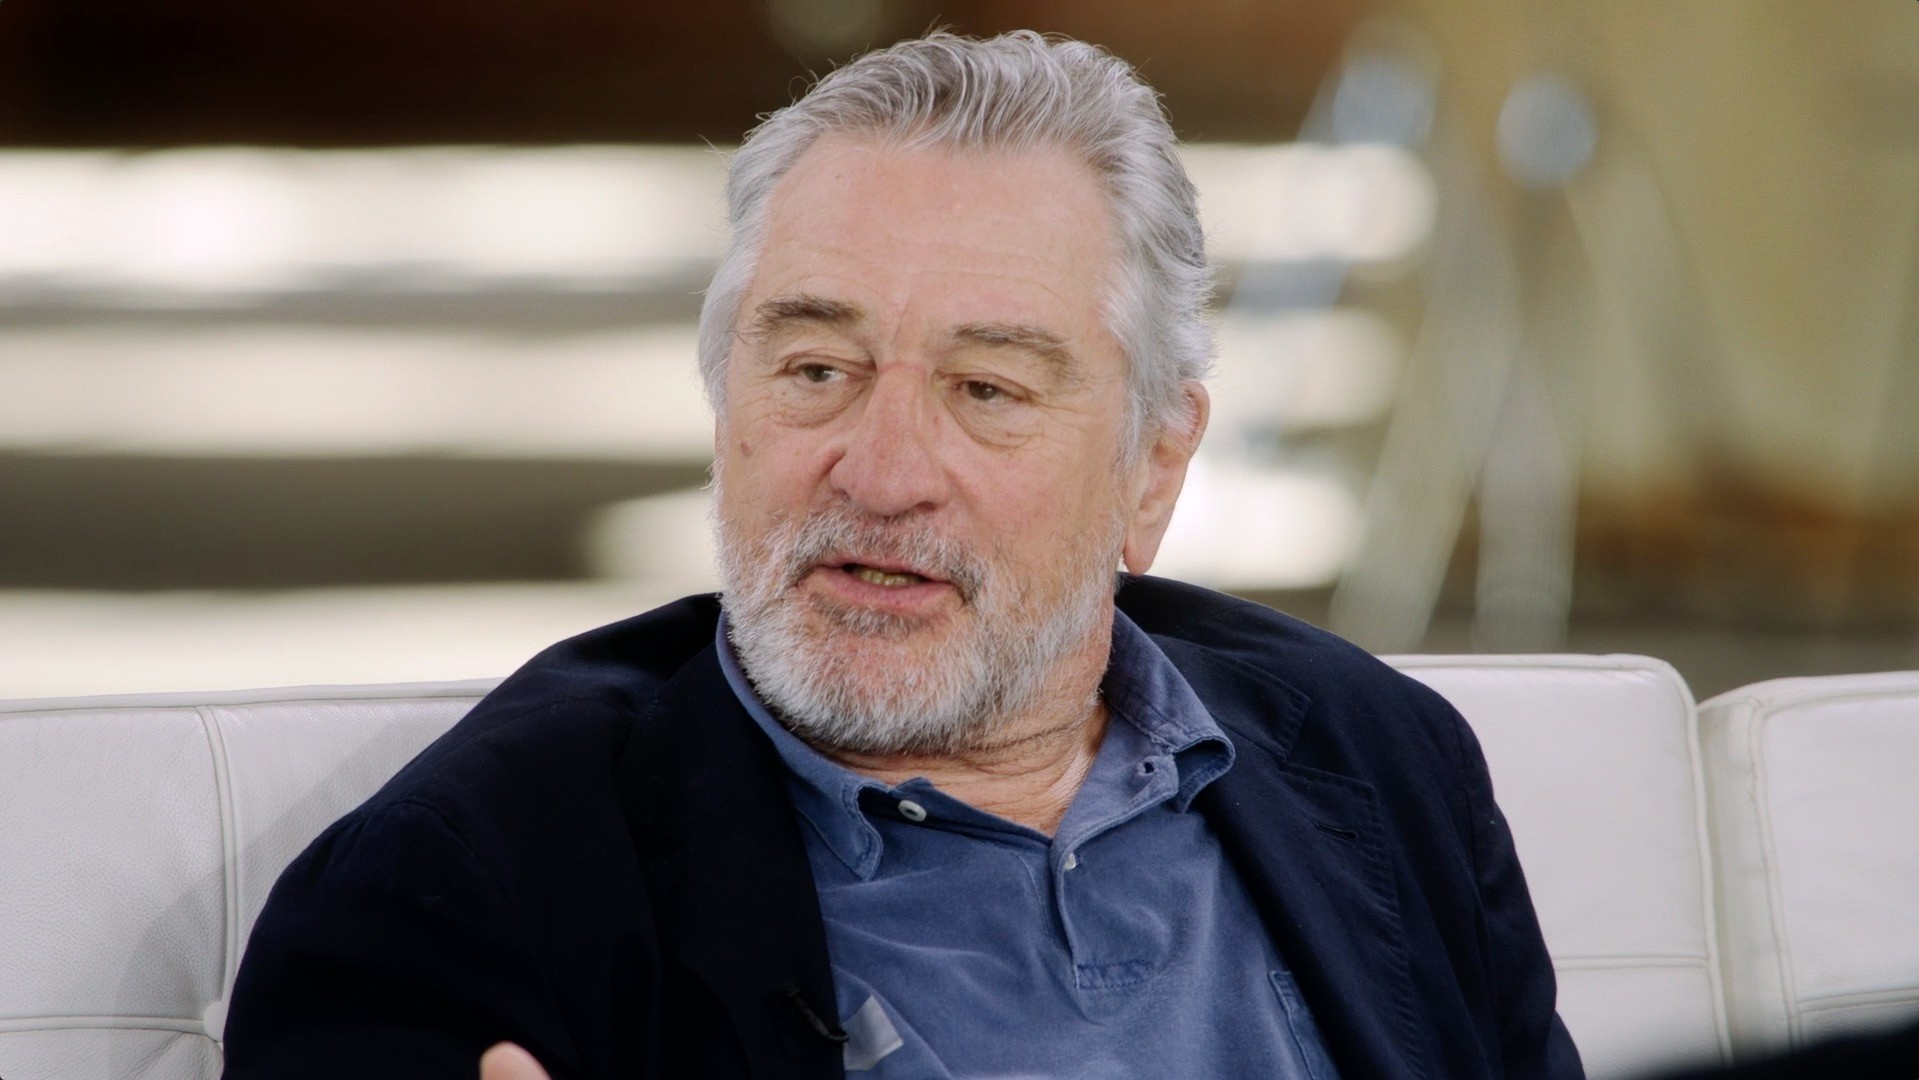 Actors Round Table Oscar Roundtable Lead Actor Working With Martin Scorsese La Times